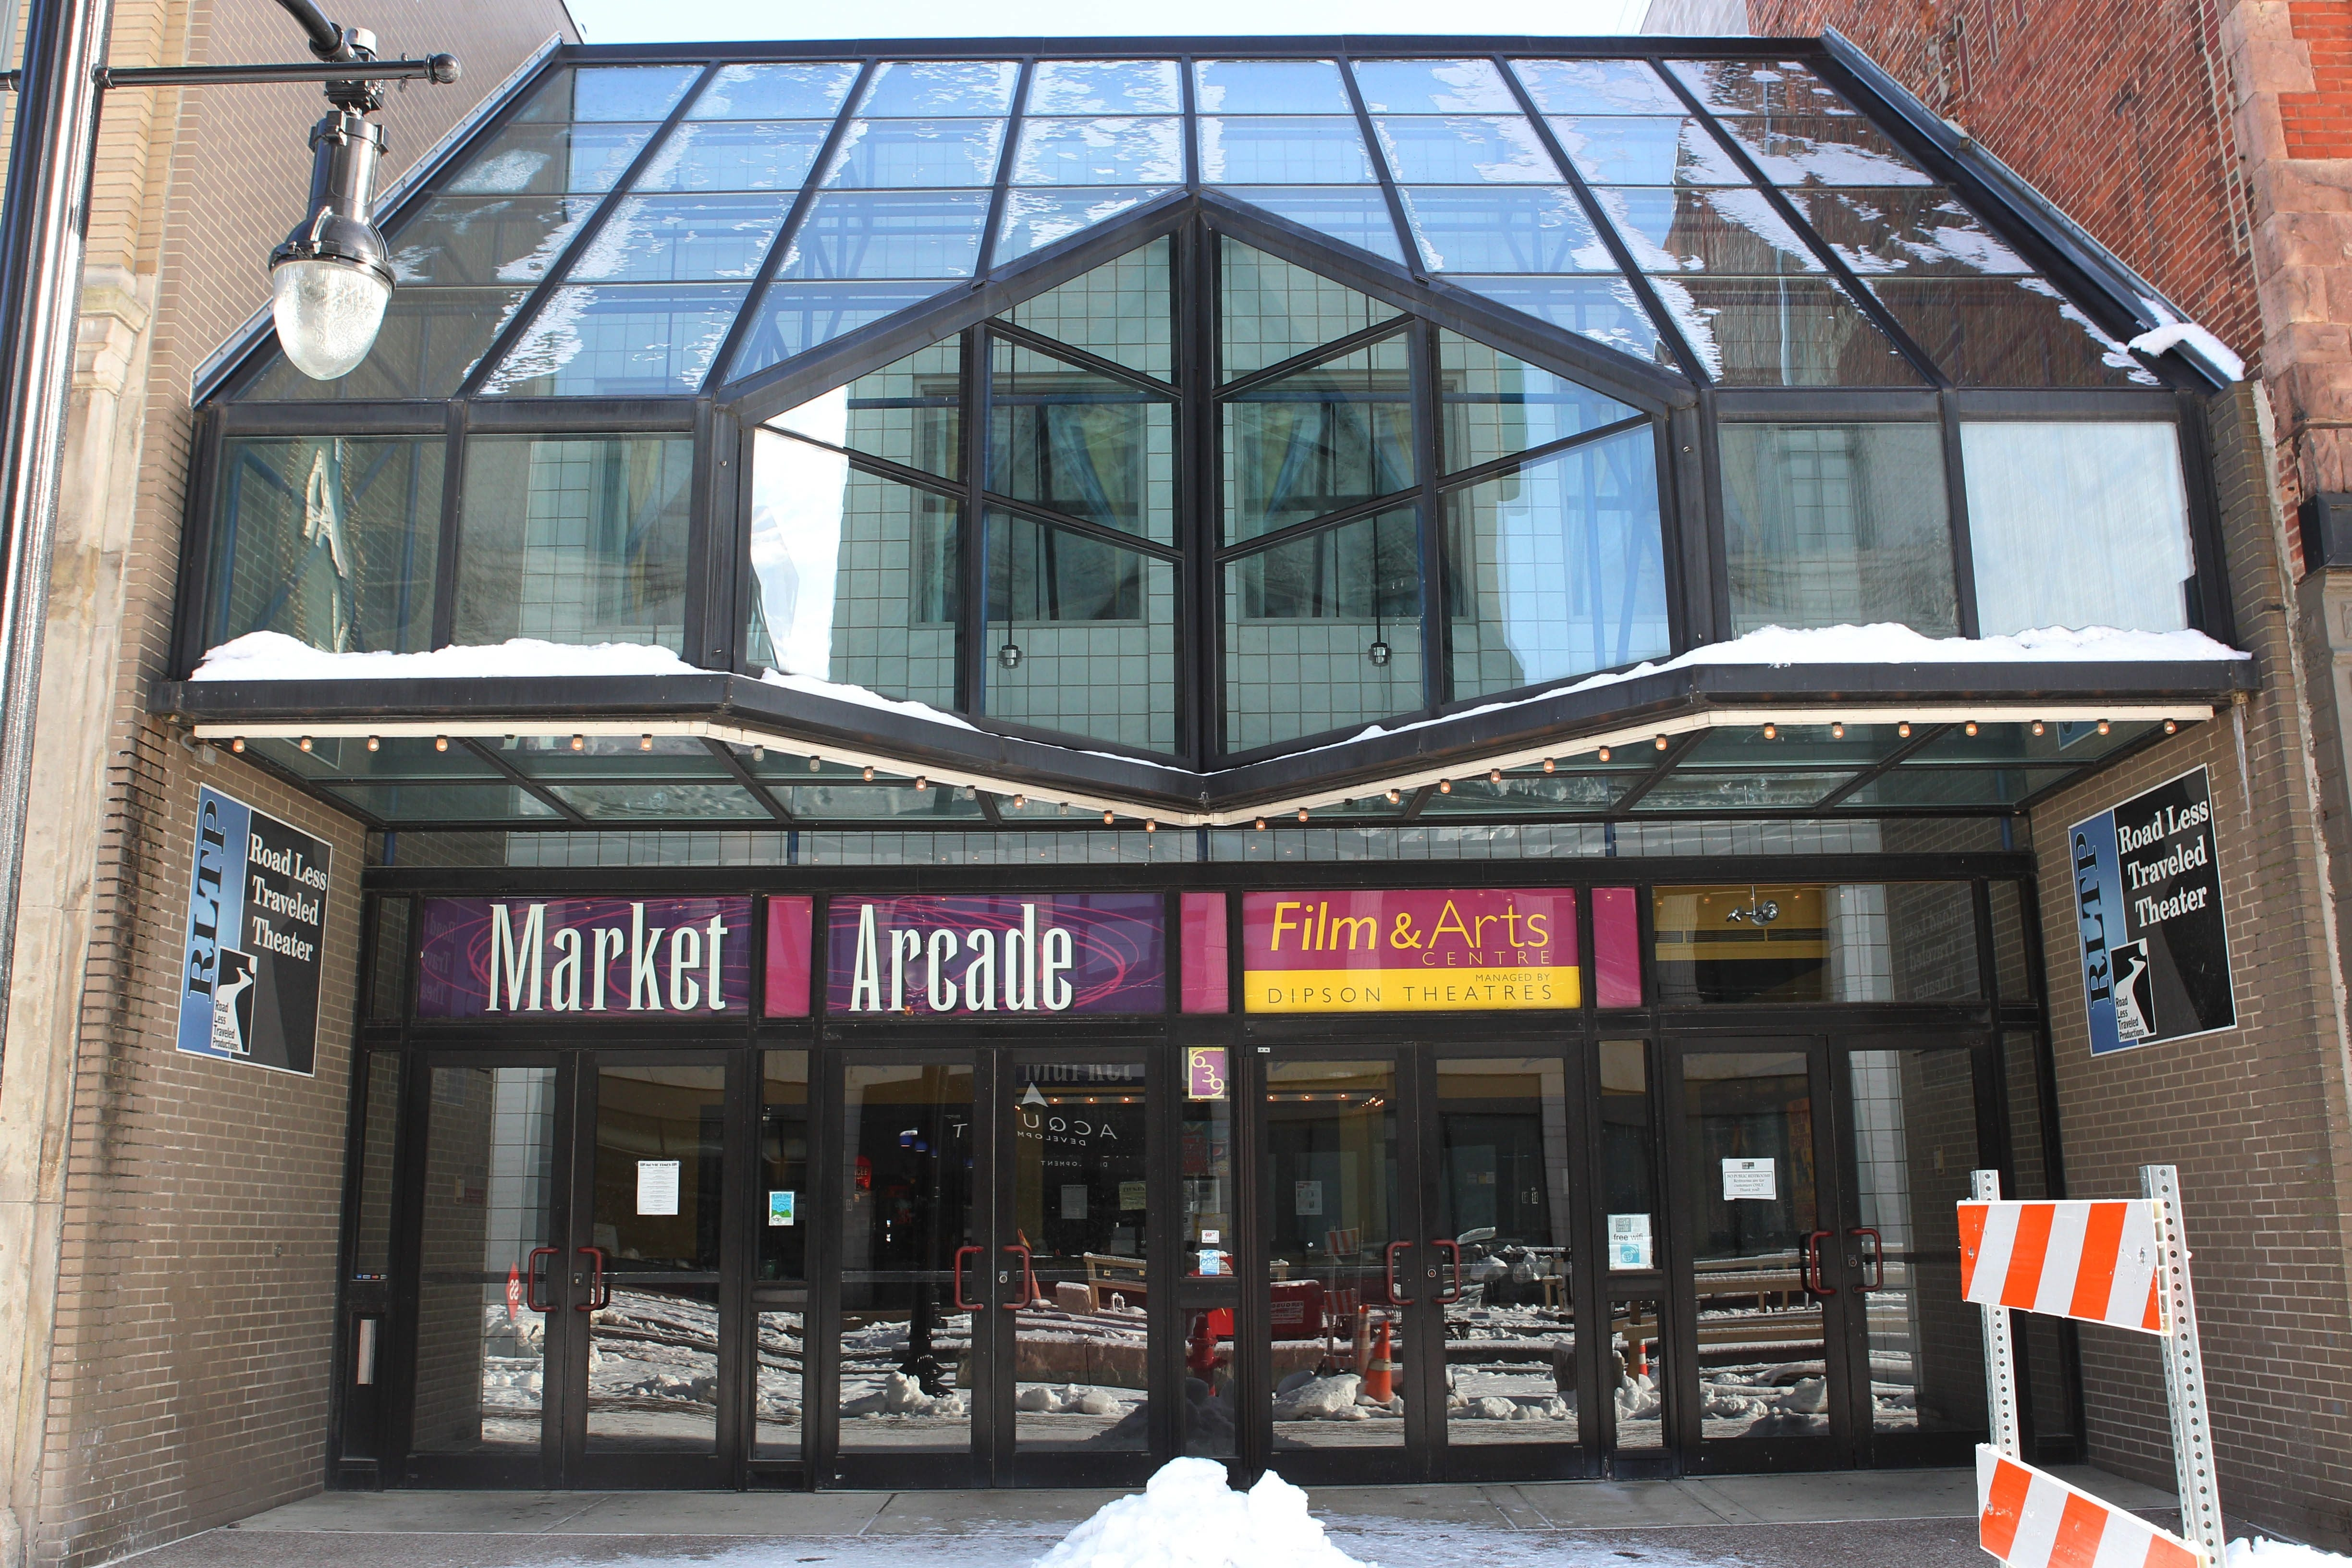 The City of Buffalo is seeking bids to operate the Market Arcade Theater on Main Street downtown.